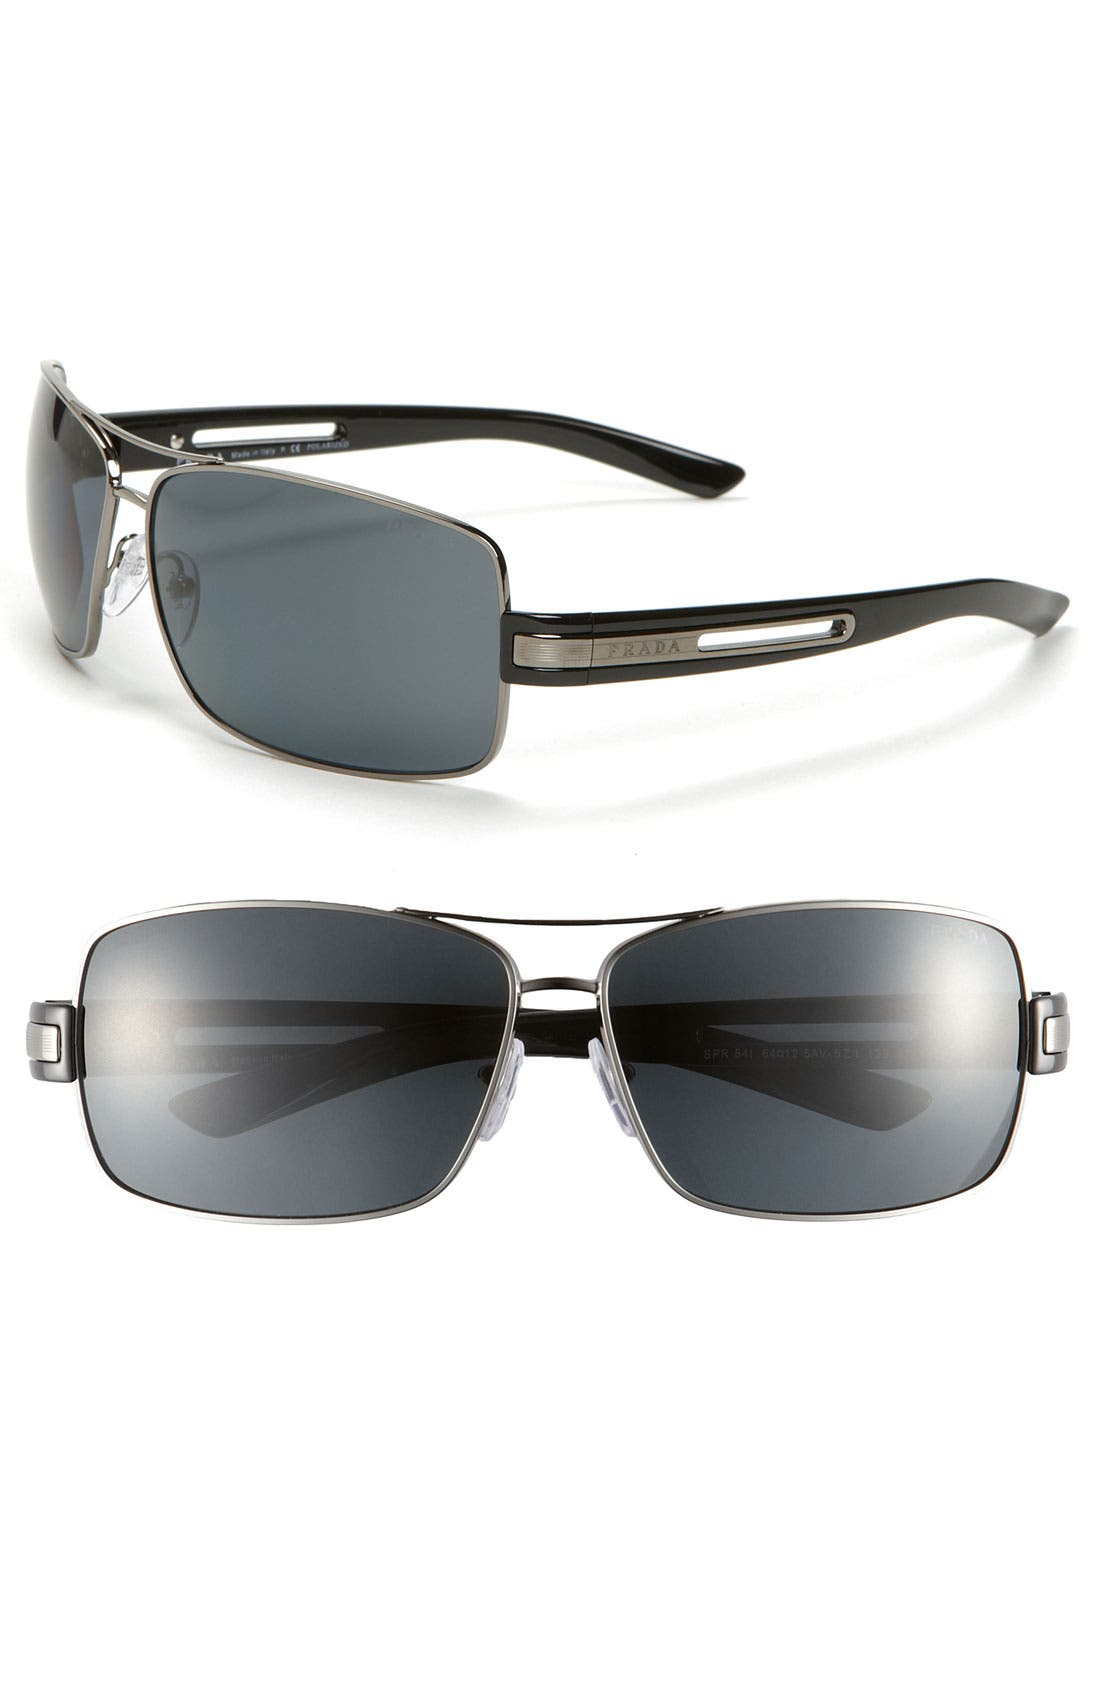 Main Image - Prada Polarized Aviator Sunglasses